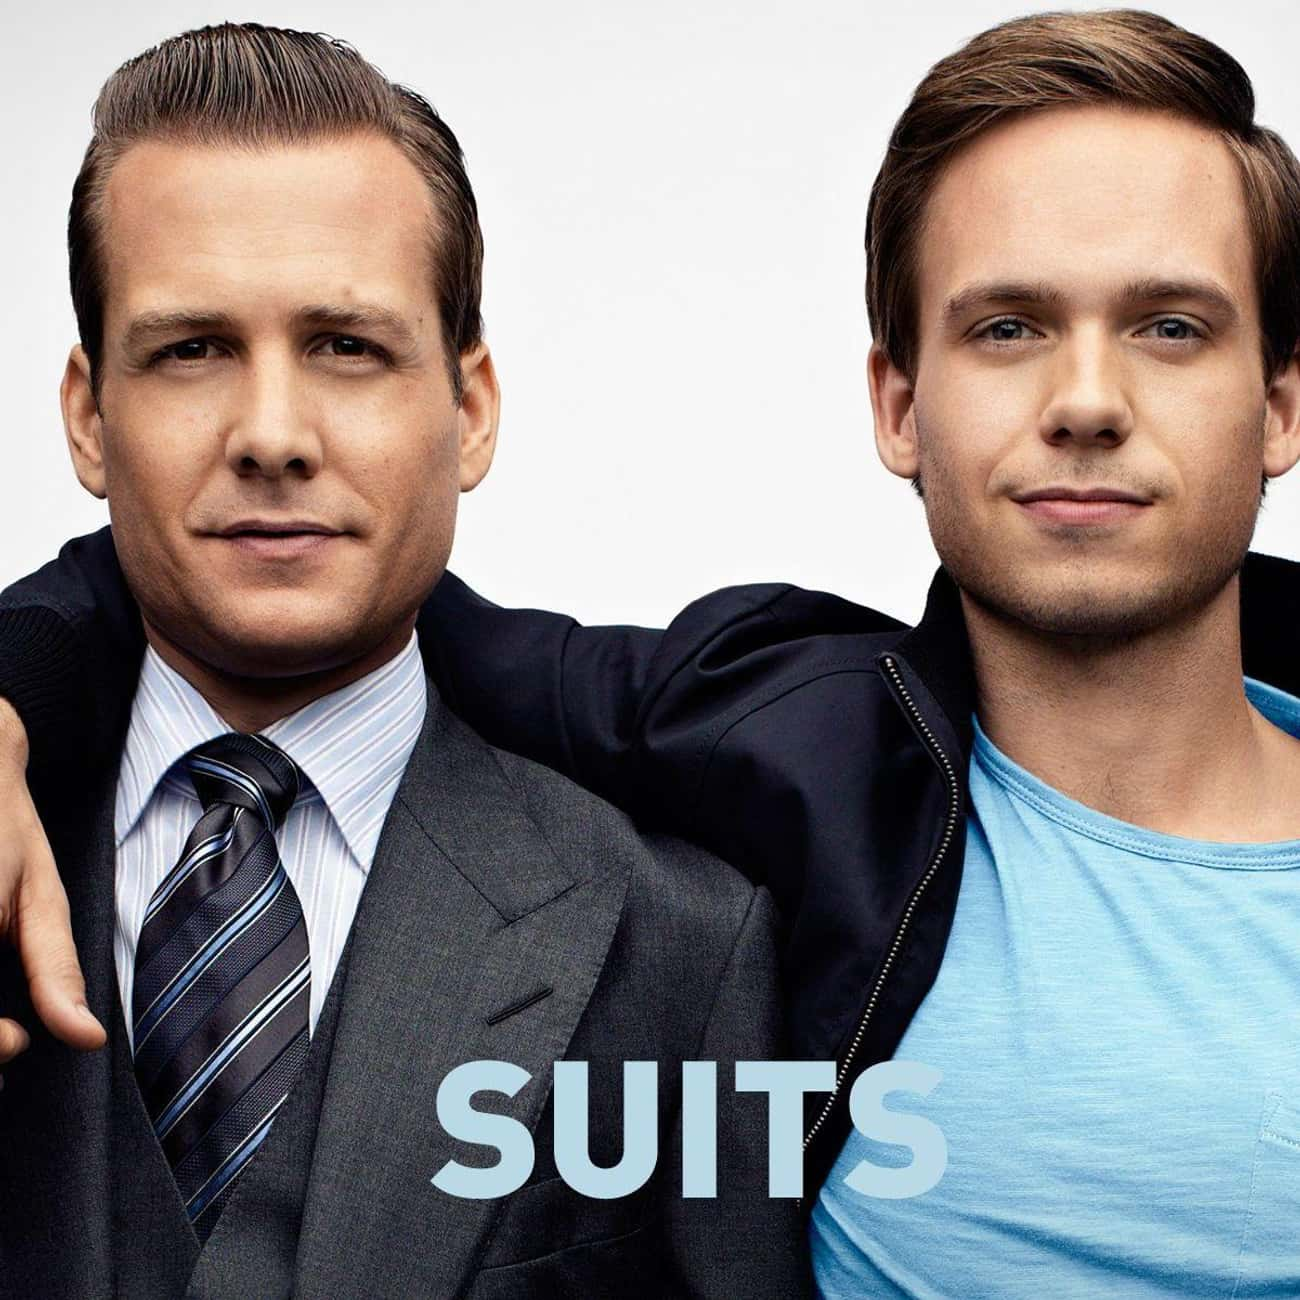 Suits is listed (or ranked) 3 on the list What to Watch If You Love 'How to Get Away with Murder'